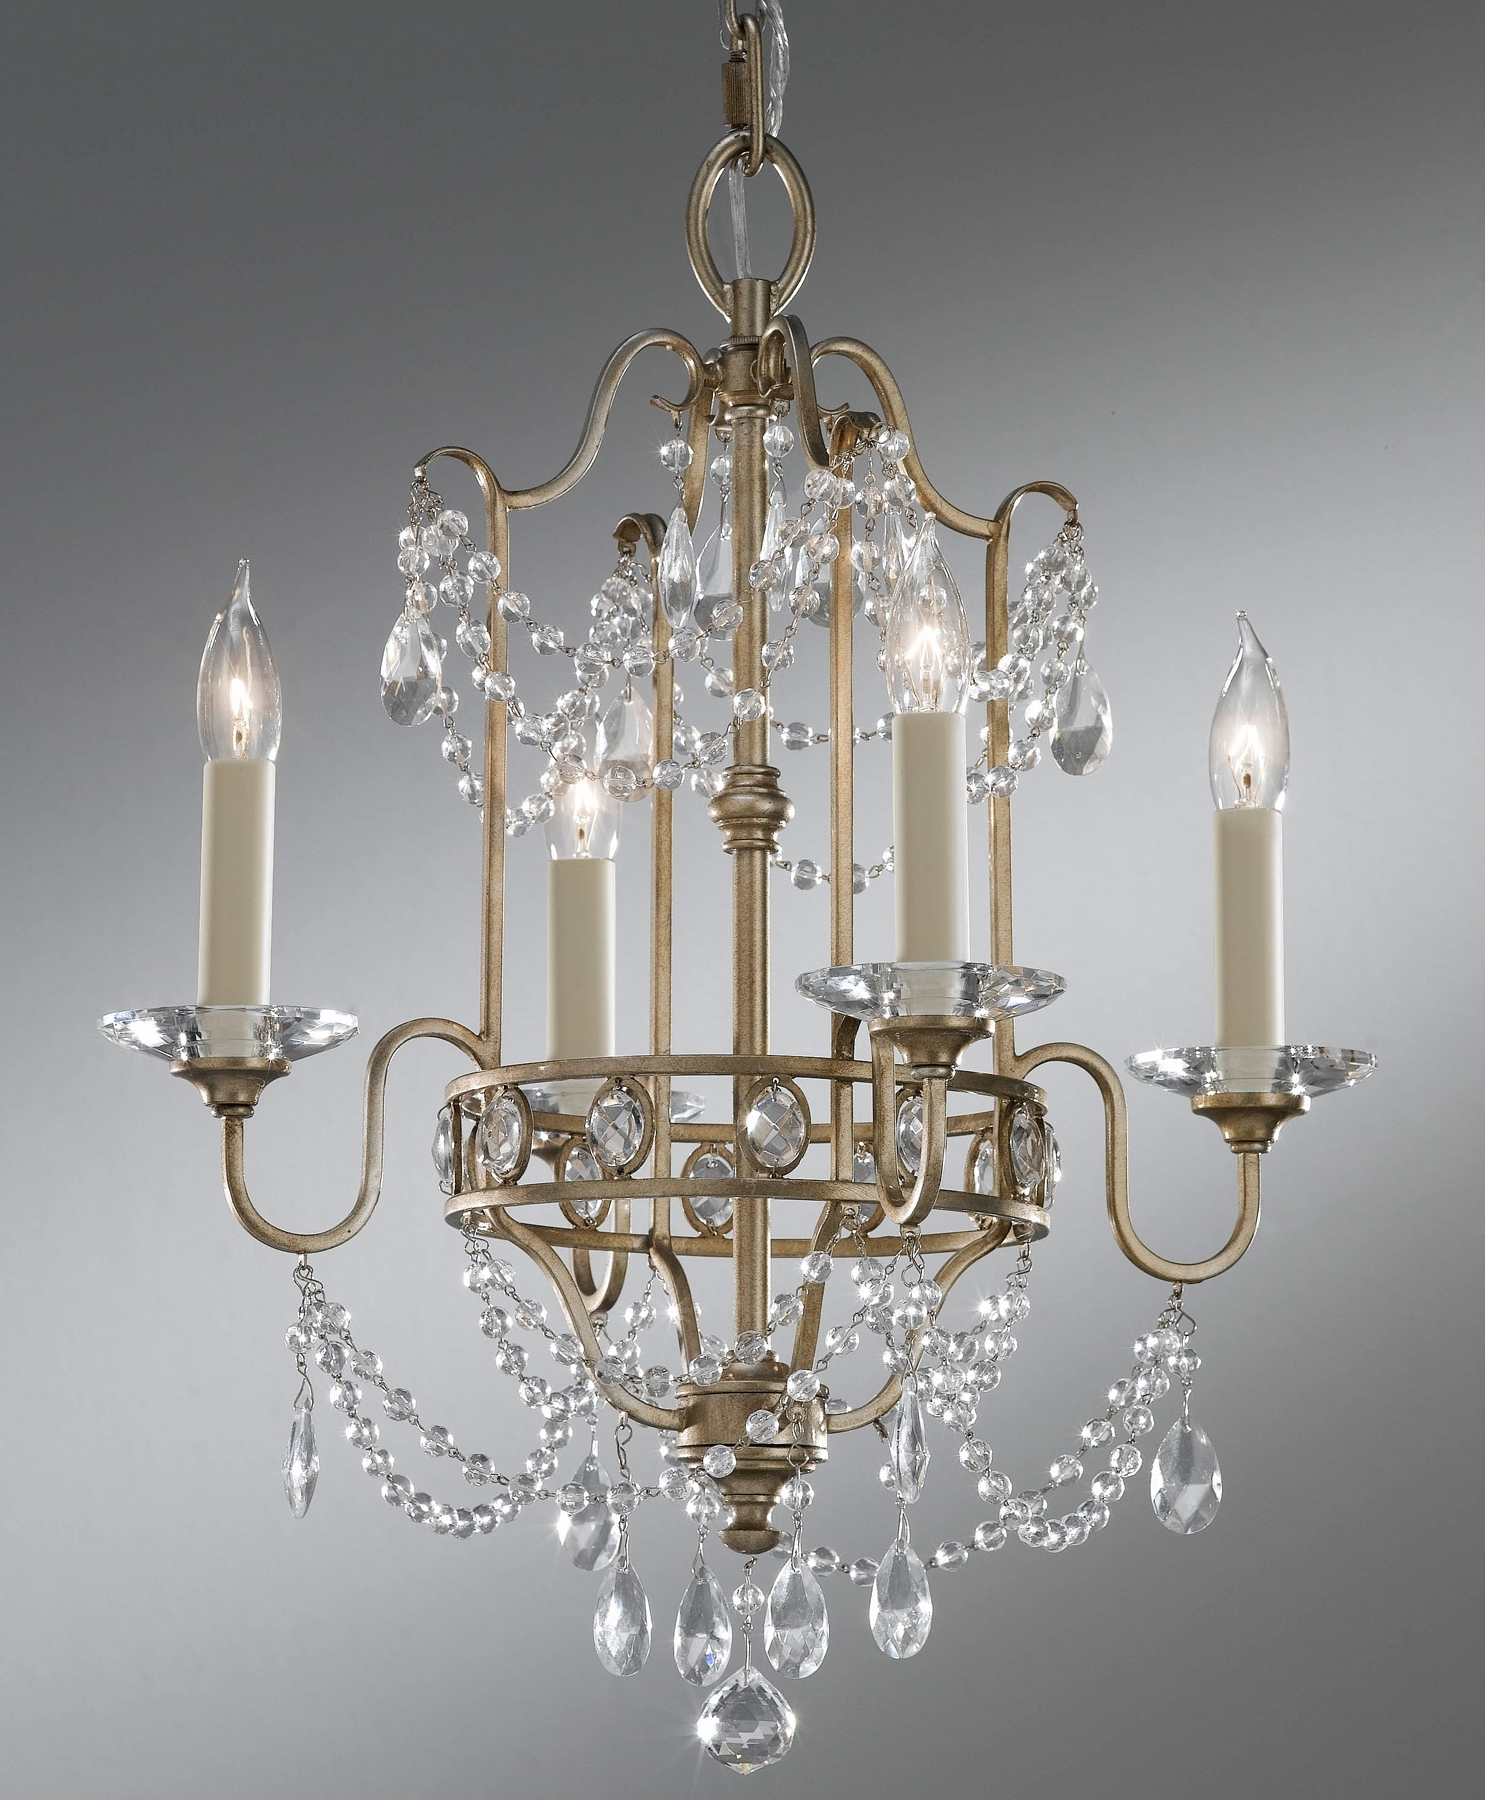 Feiss F2476/4Gs Crystal Gianna Four Light Mini Chandelier Within Most Recently Released Gianna Mini Chandeliers (View 6 of 15)